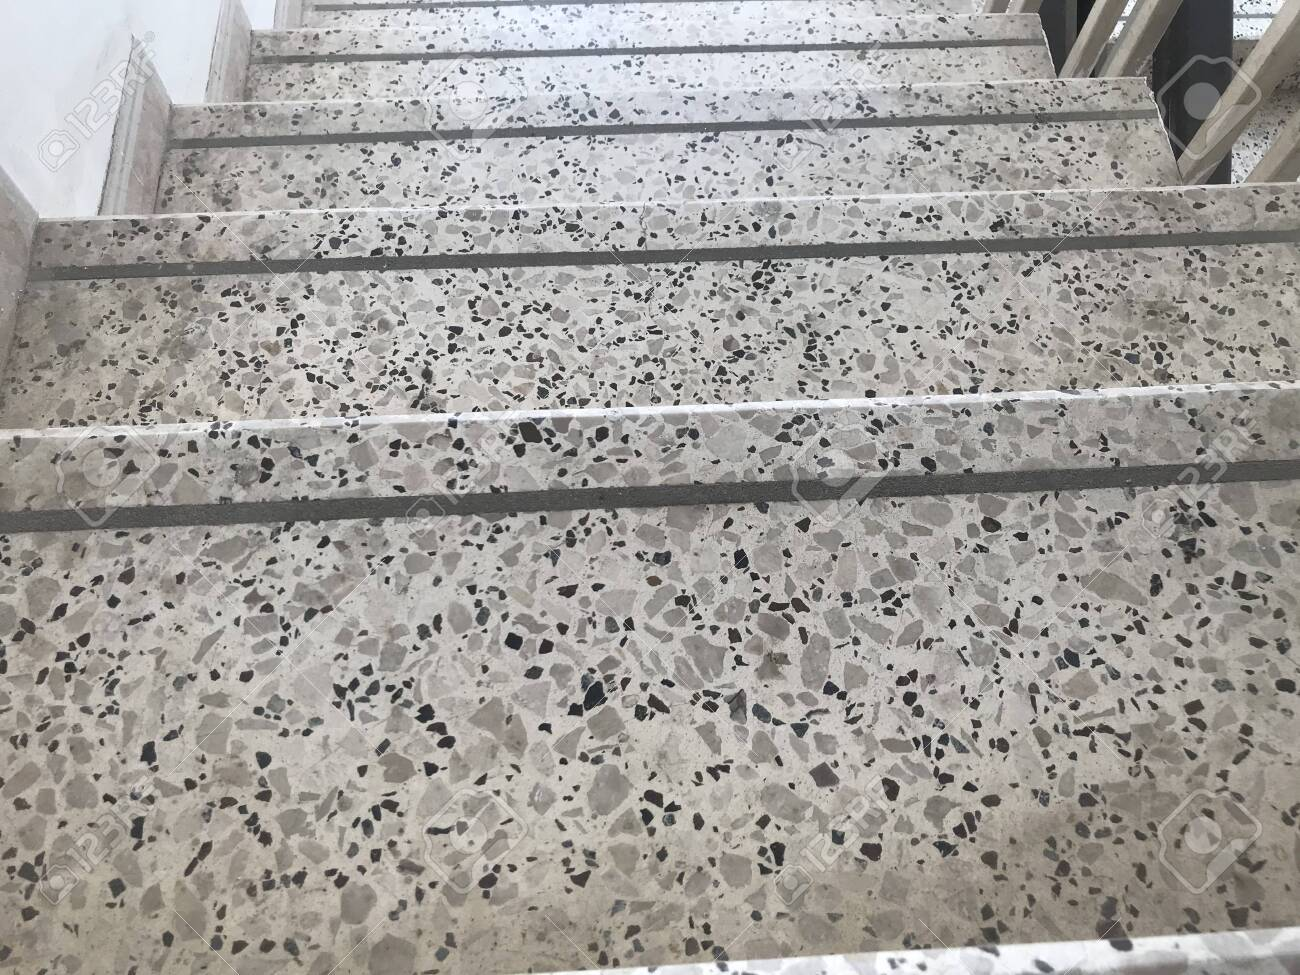 Non slip grooves made over the Treads of Staircase finished by Granite stone flooring and for steps of an high rise building fire emergency escape stairs - 144621452